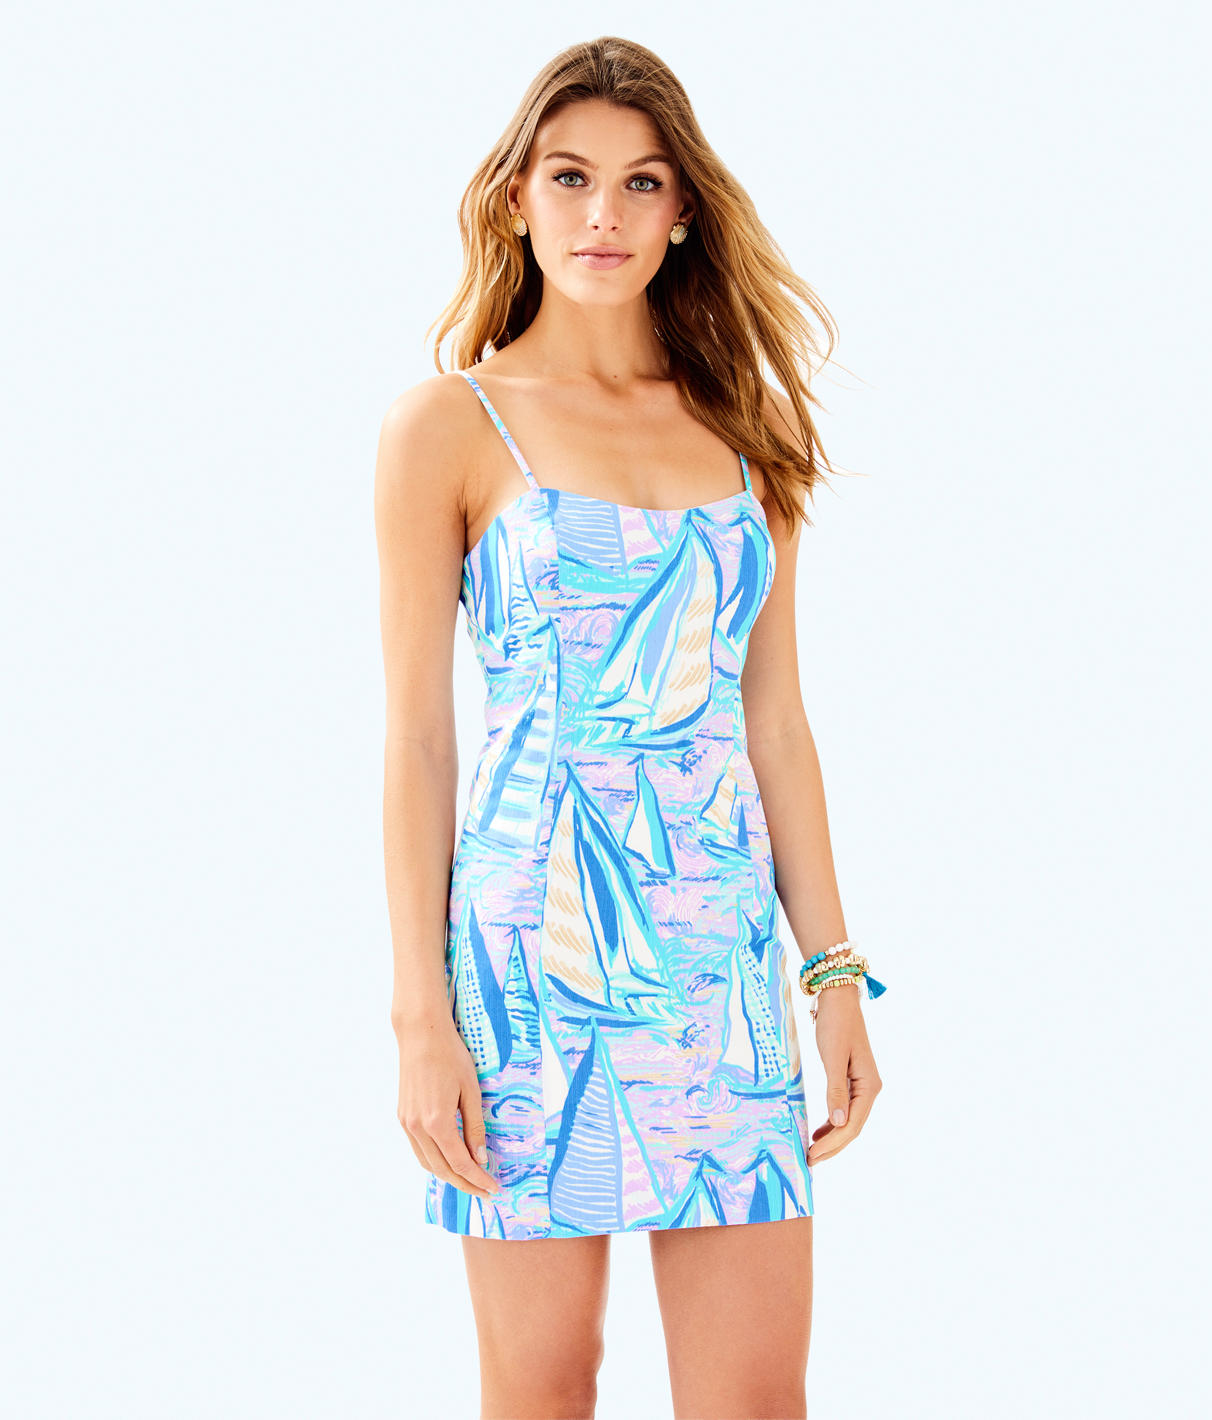 Shelli Stretch Dress, Light Lilac Aboat Time in Light Lilac Verbena Aboat Time from Lilly Pulitzer